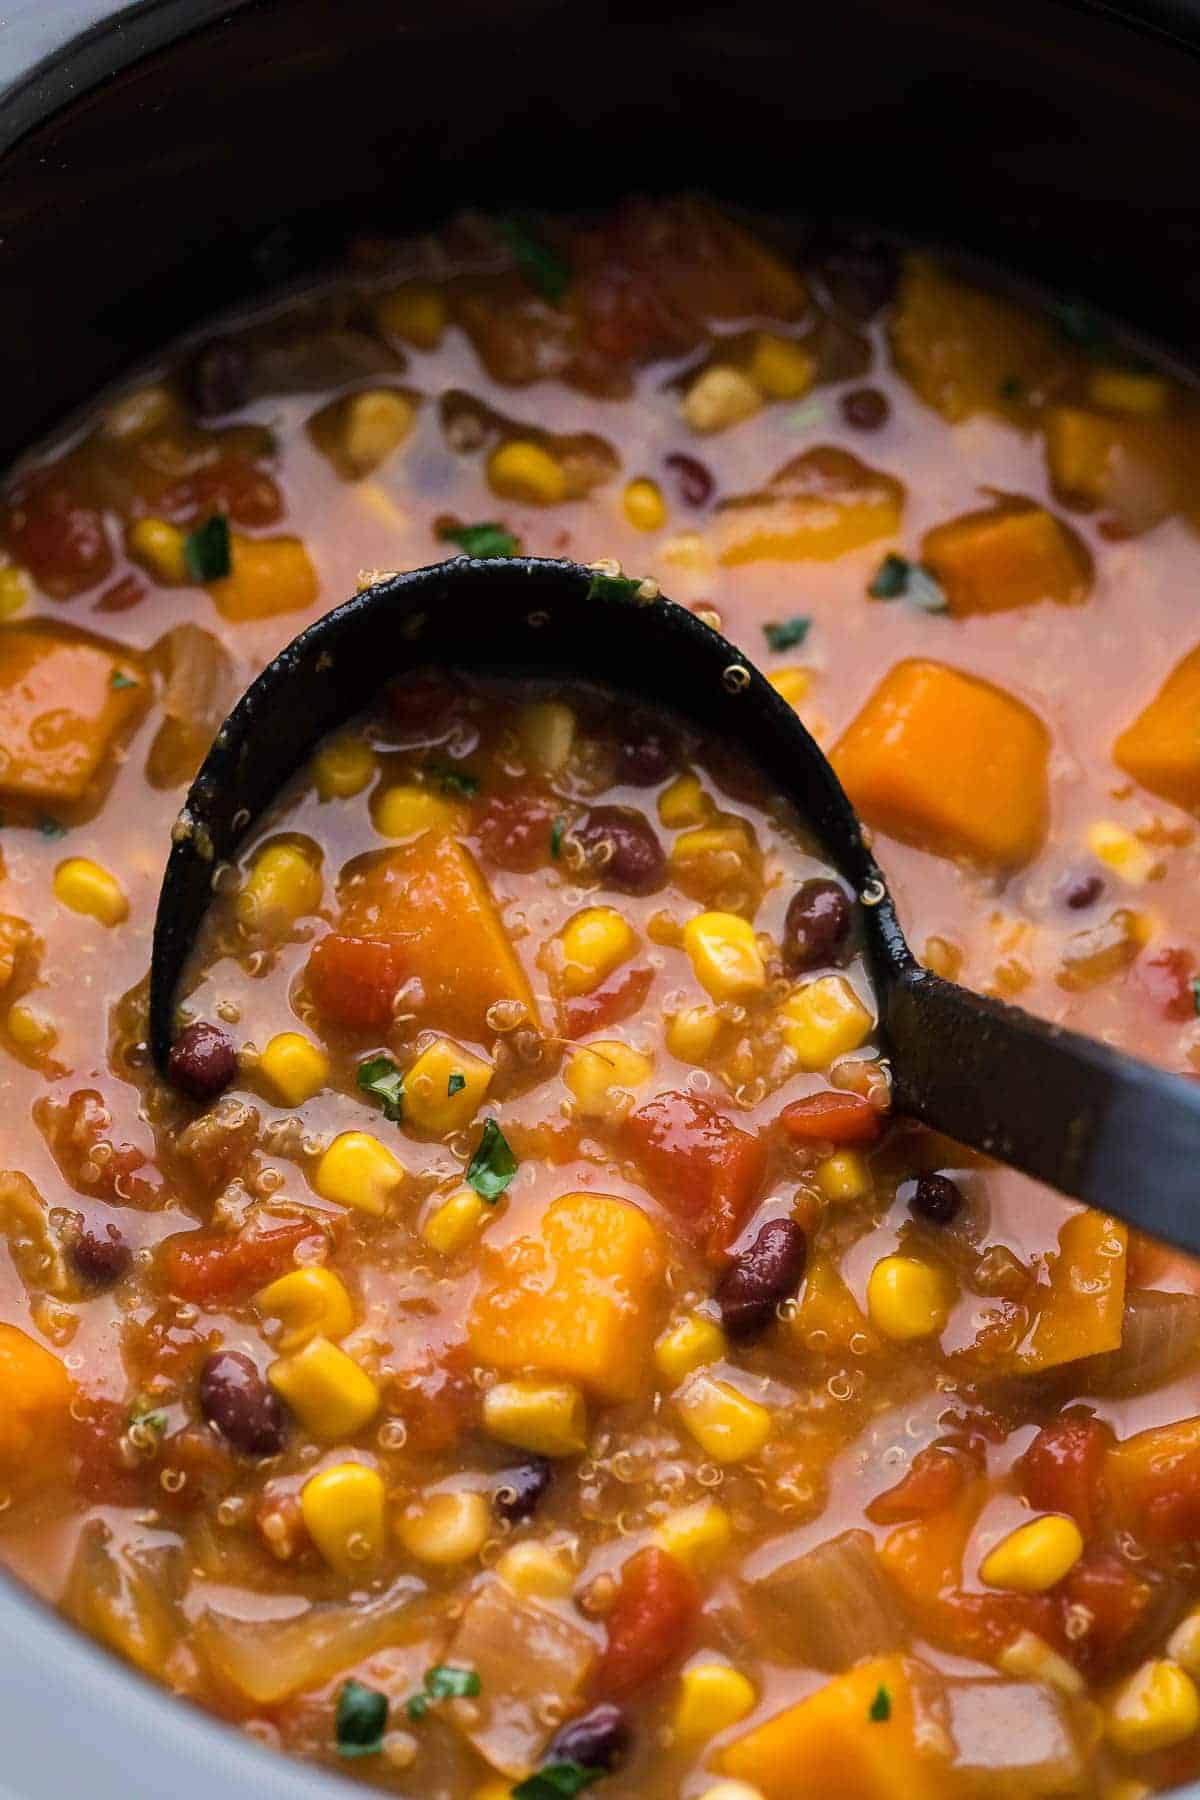 Sweet potato stew in slow cooker with a ladle after cooking